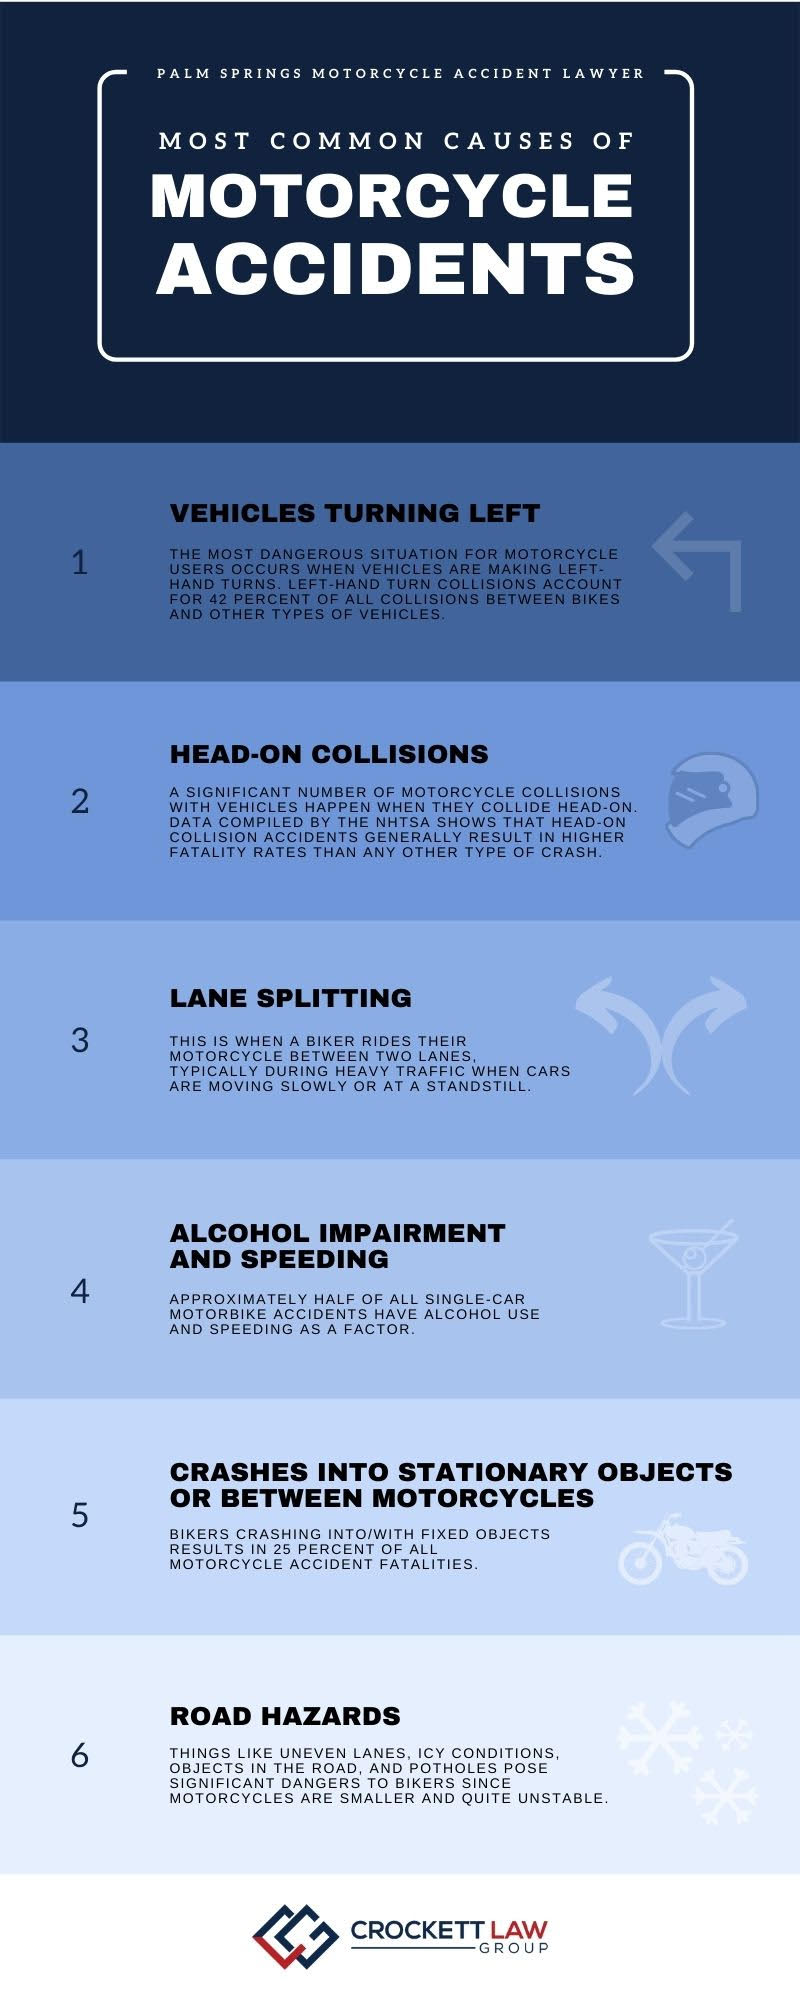 Palm Spring Motorcycle Accident Lawyer Infographic